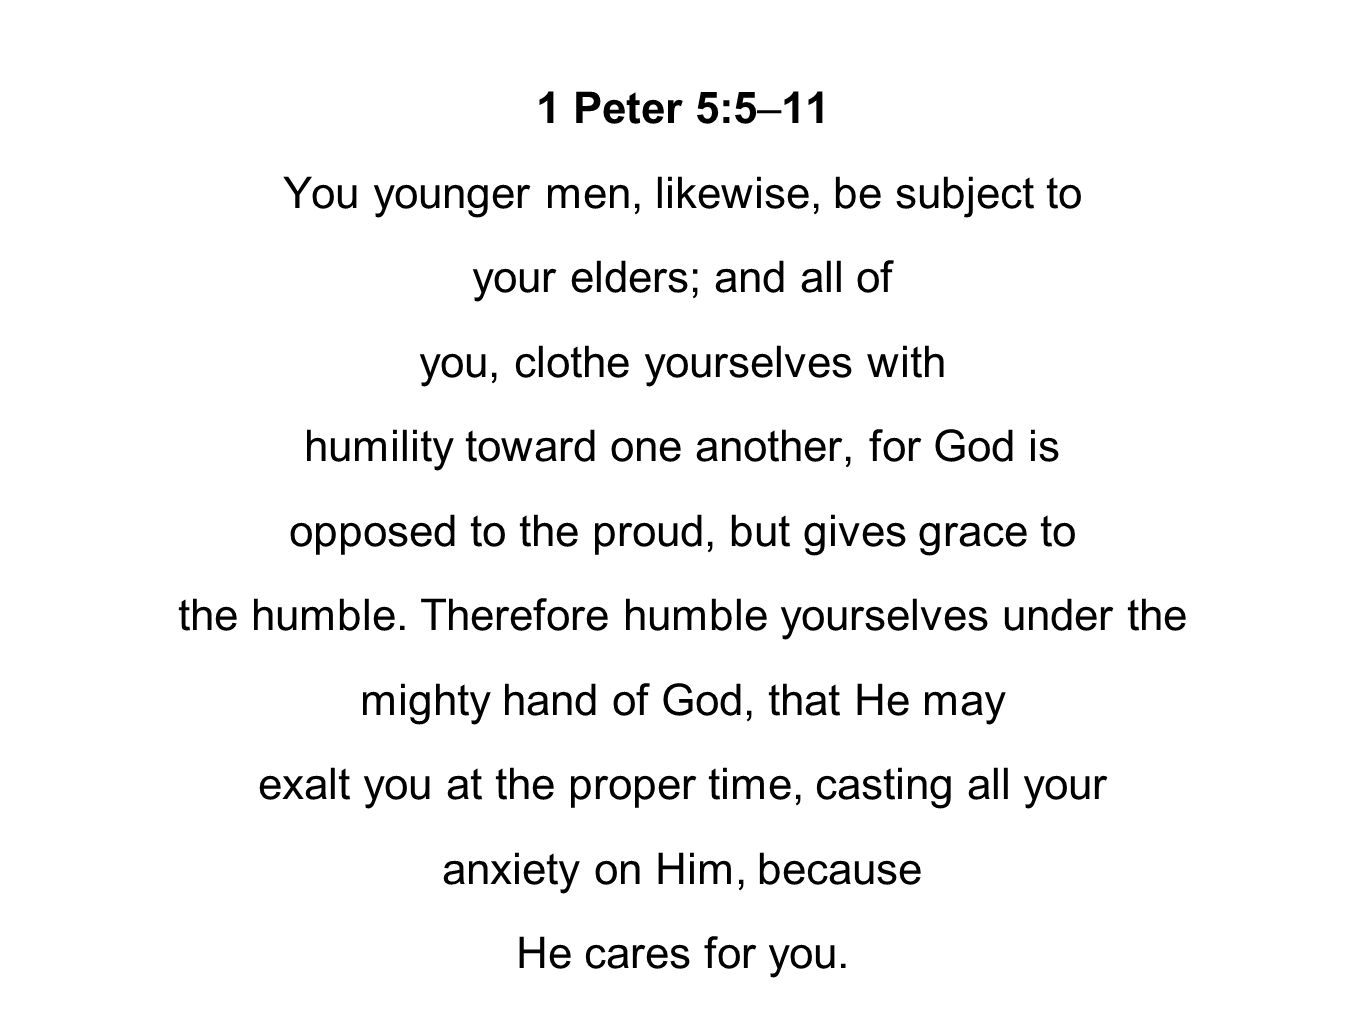 1 Peter 5:5–11 You younger men, likewise, be subject to your elders; and all of you, clothe yourselves with humility toward one another, for God is opposed to the proud, but gives grace to the humble.